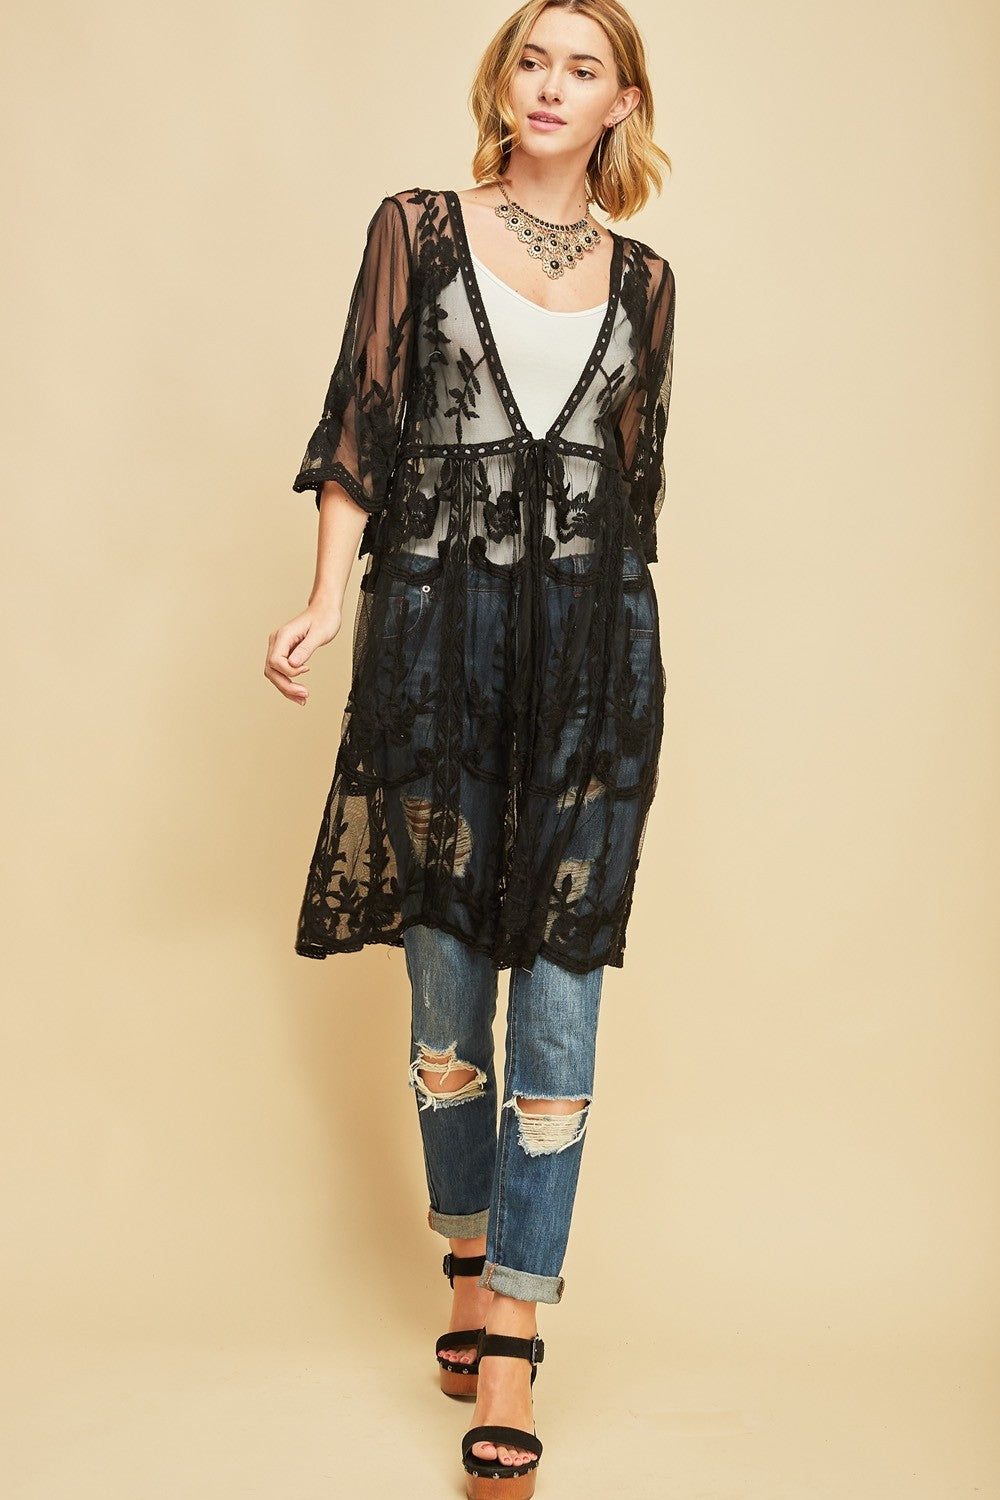 Front full view woman wearing black empire waist tie front sheer floral embroidered kimono